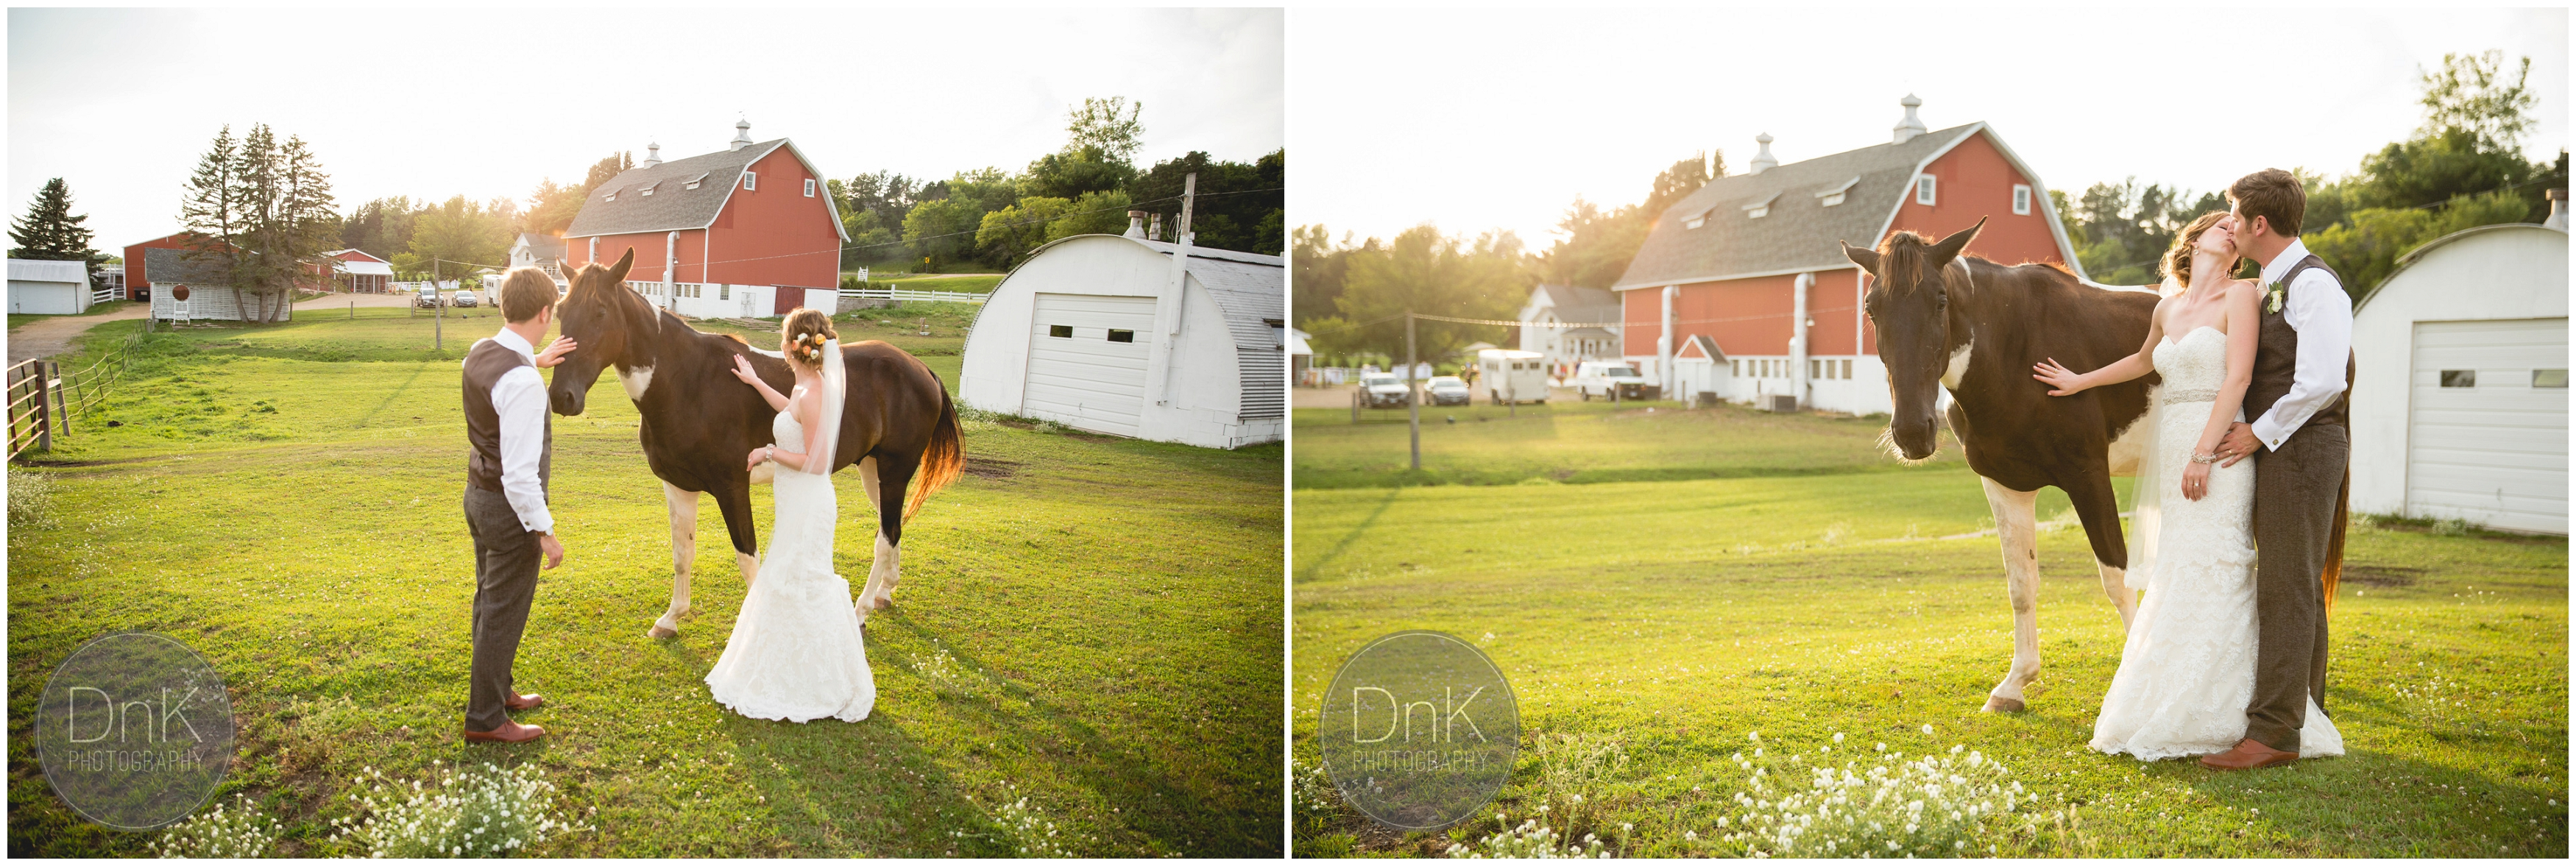 44 - Dellwood Barn Wedding Pictures with a Horse